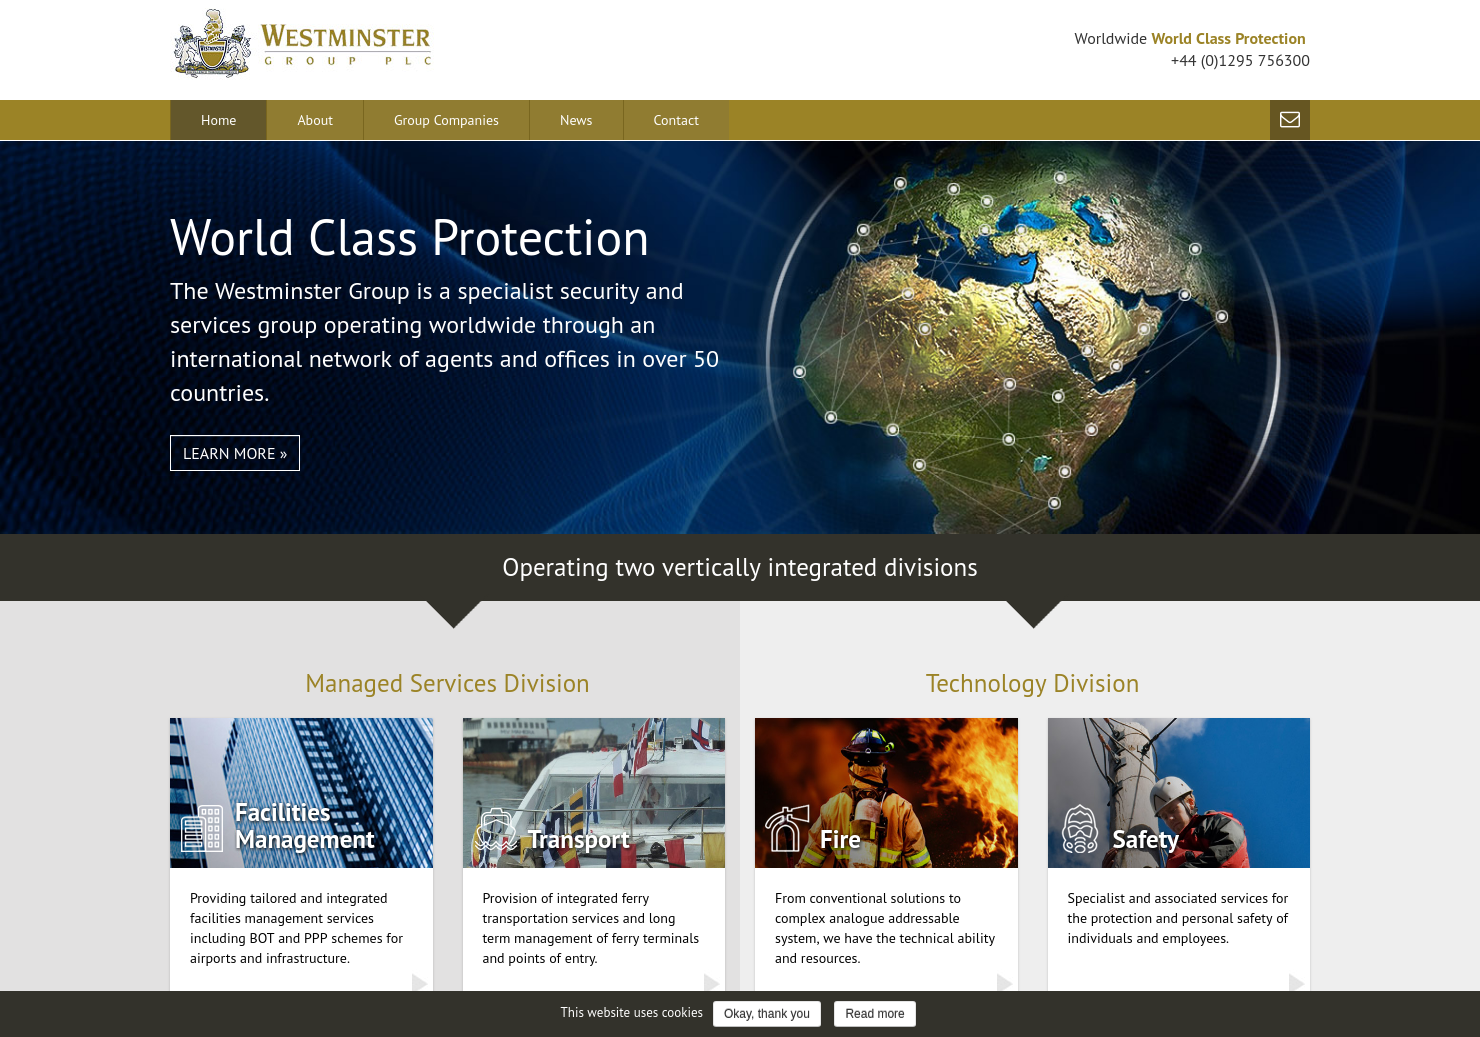 Westminster Group Home Page